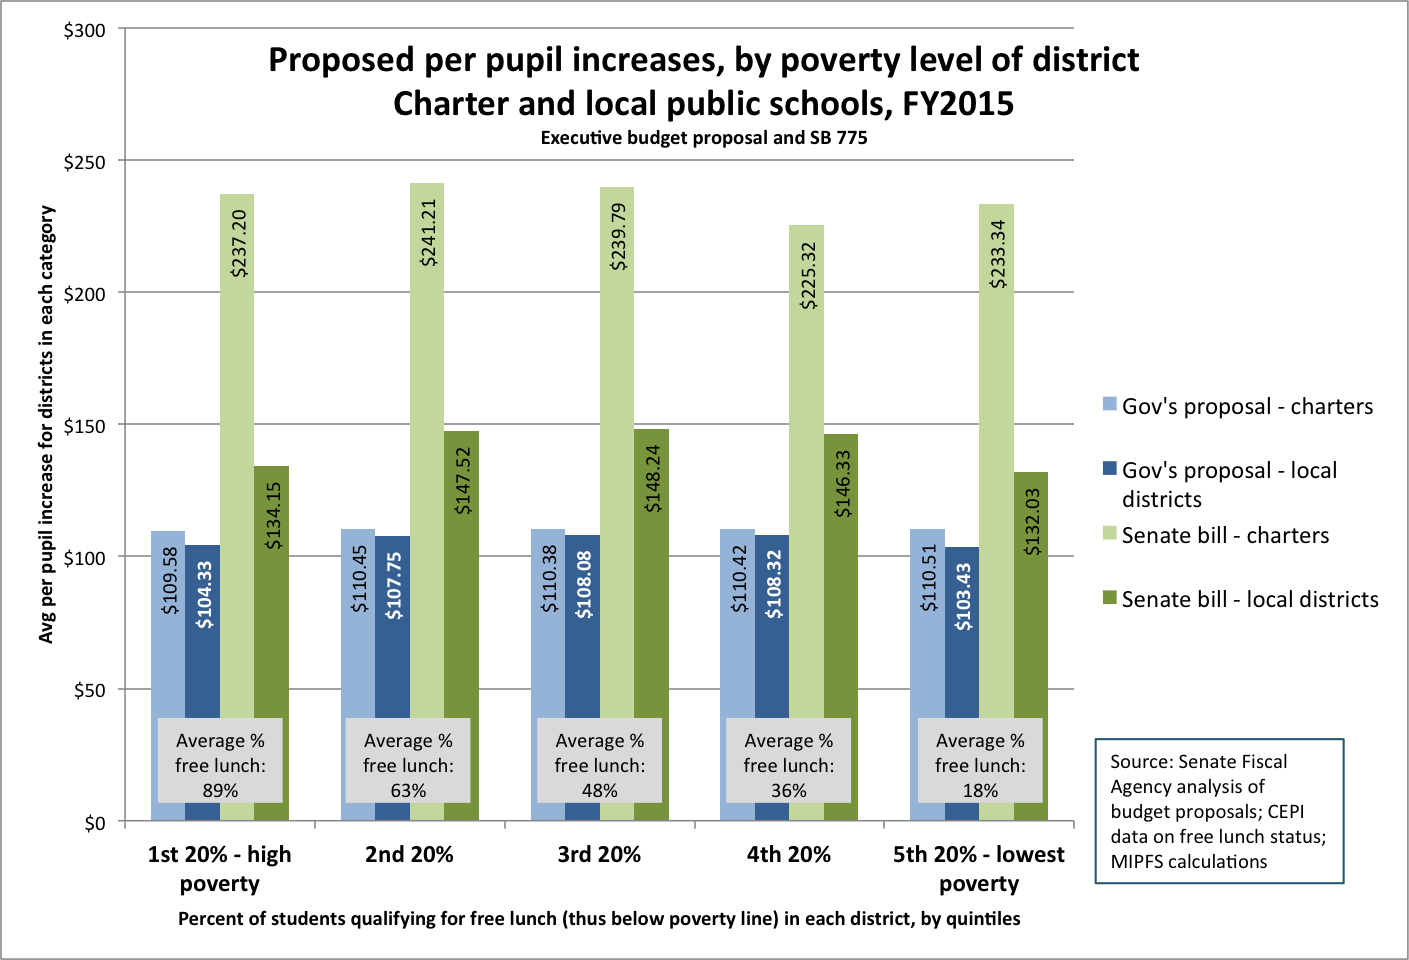 Avg increase by poverty level of district, Sen vs Gov